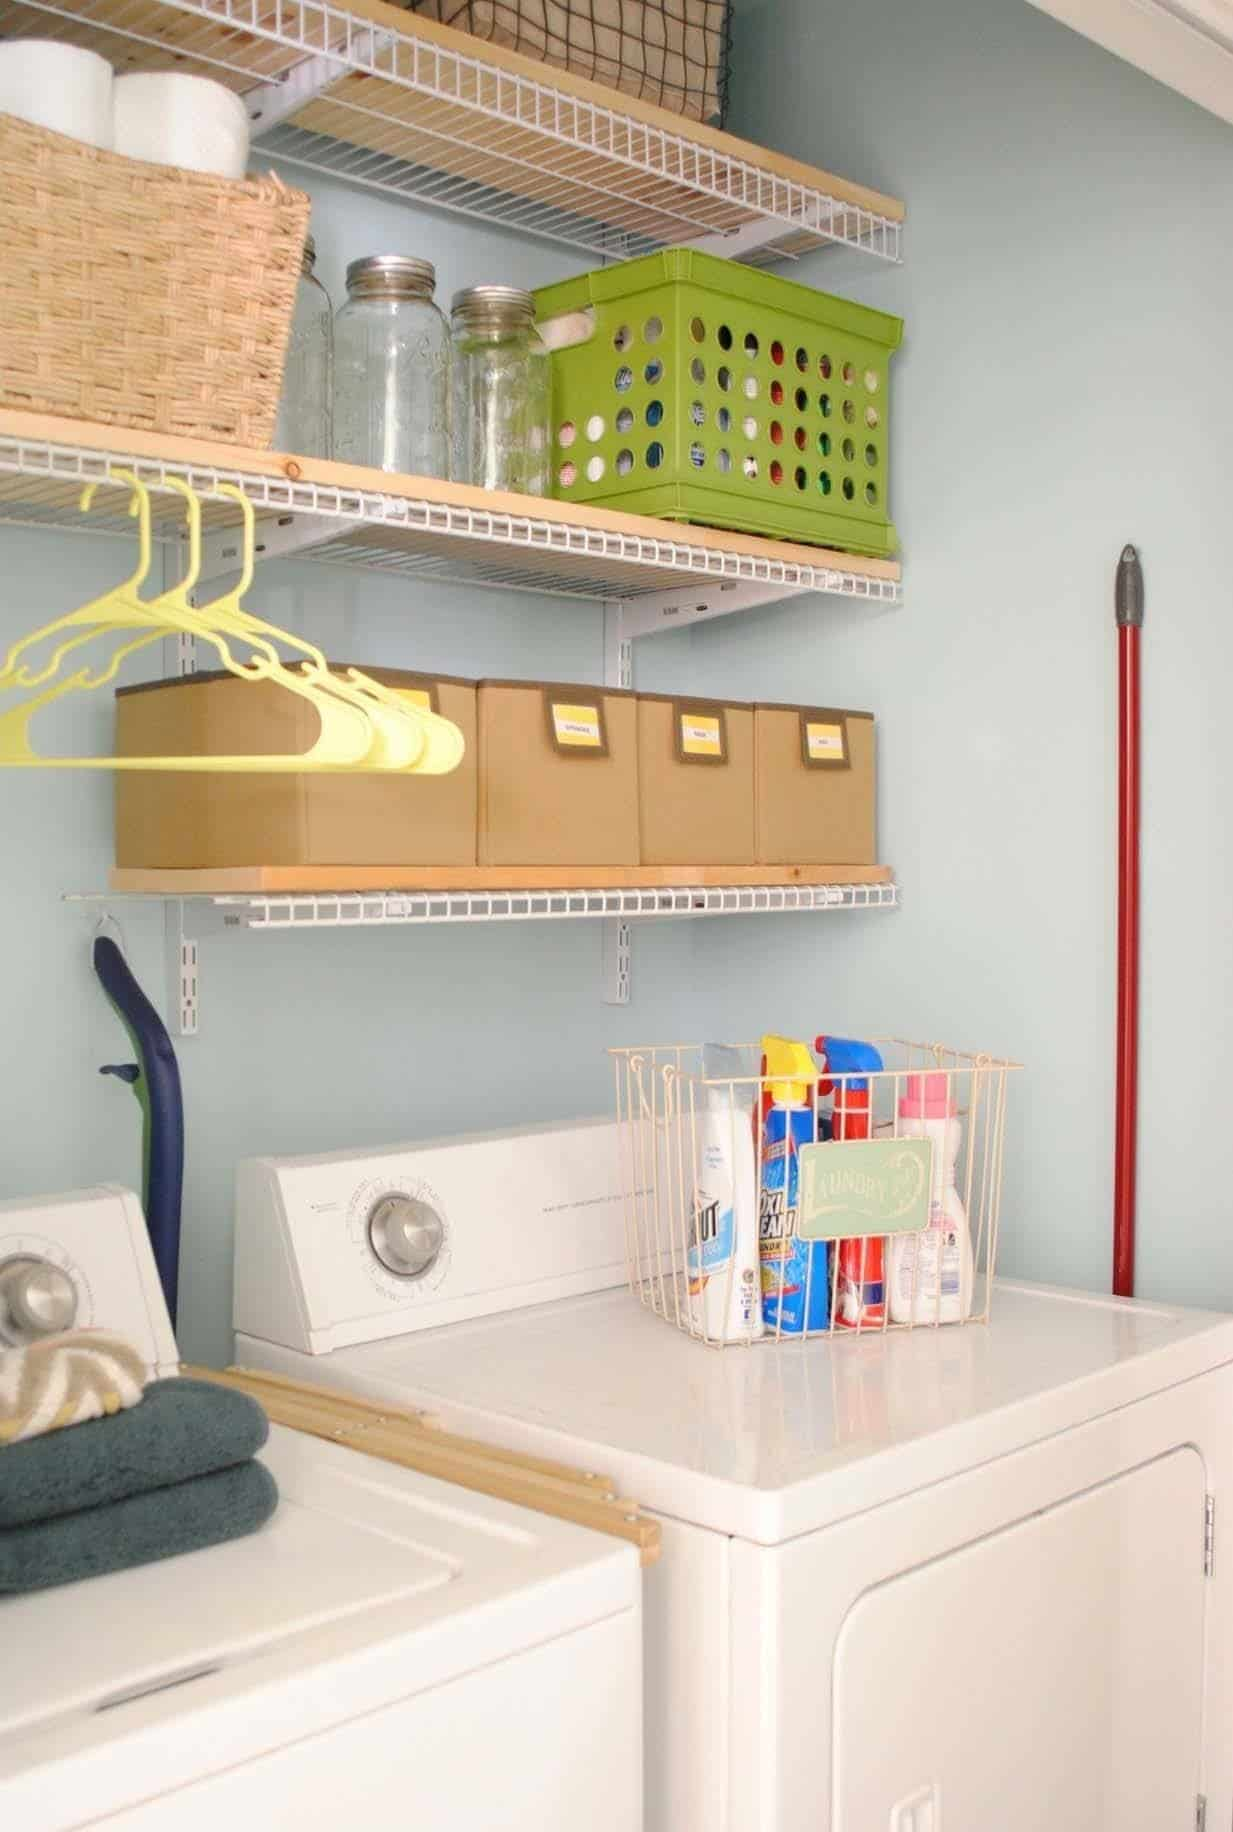 Laundry Room Organization Ideas 28 1 Kindesign